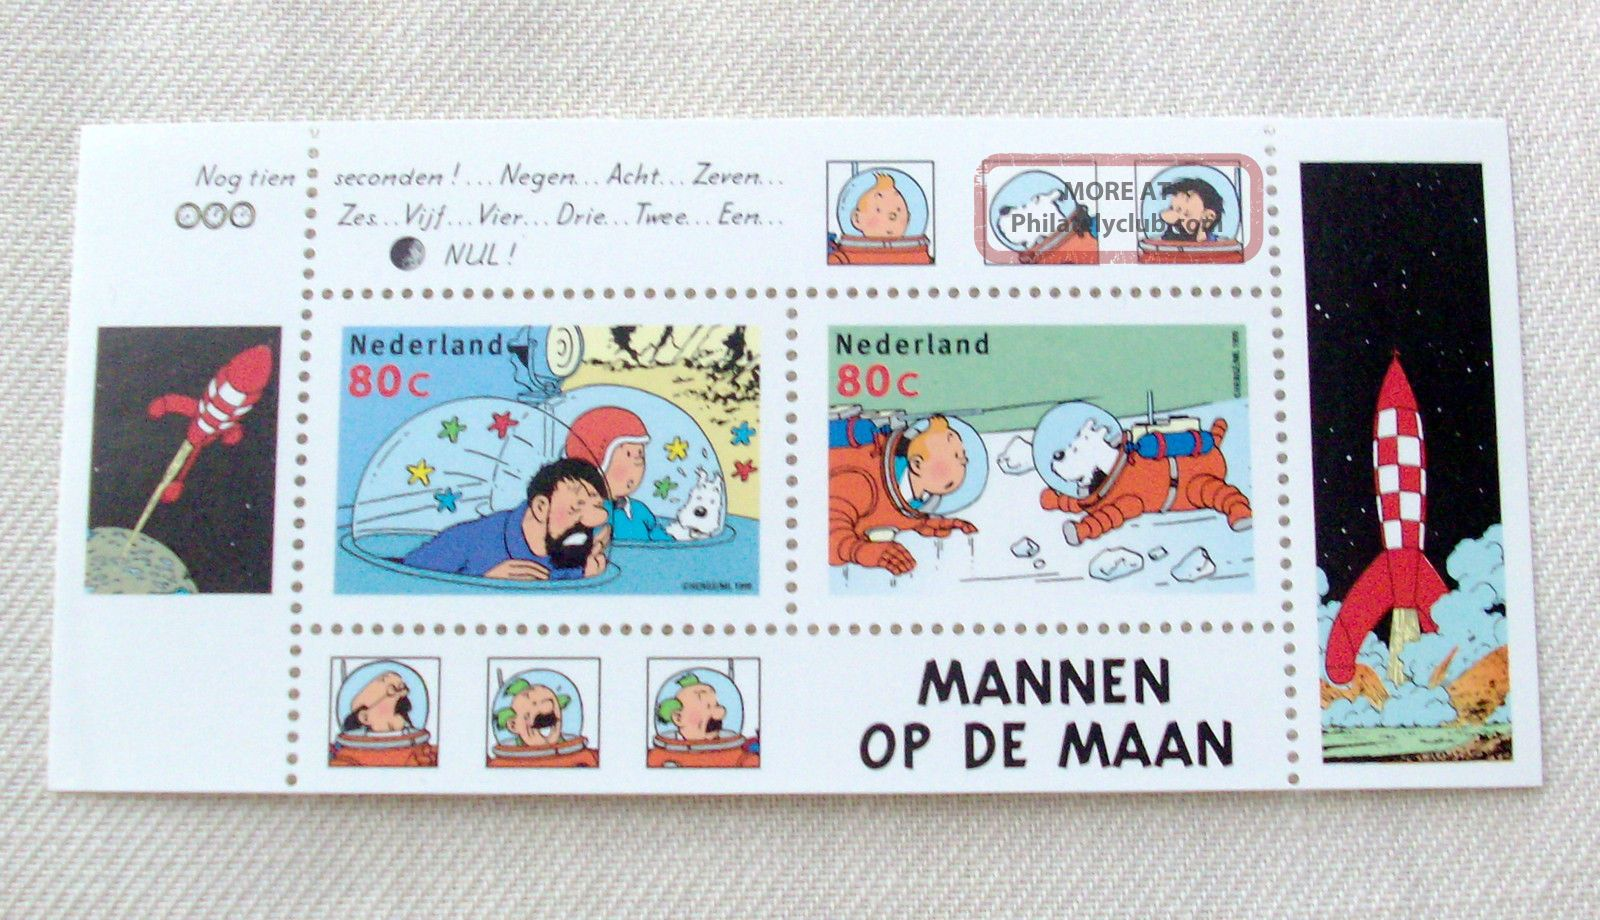 Netherlands 1999 Tintin ' Men On The Moon ' Souvenir Sheet - Limited Edition - Topical Stamps photo